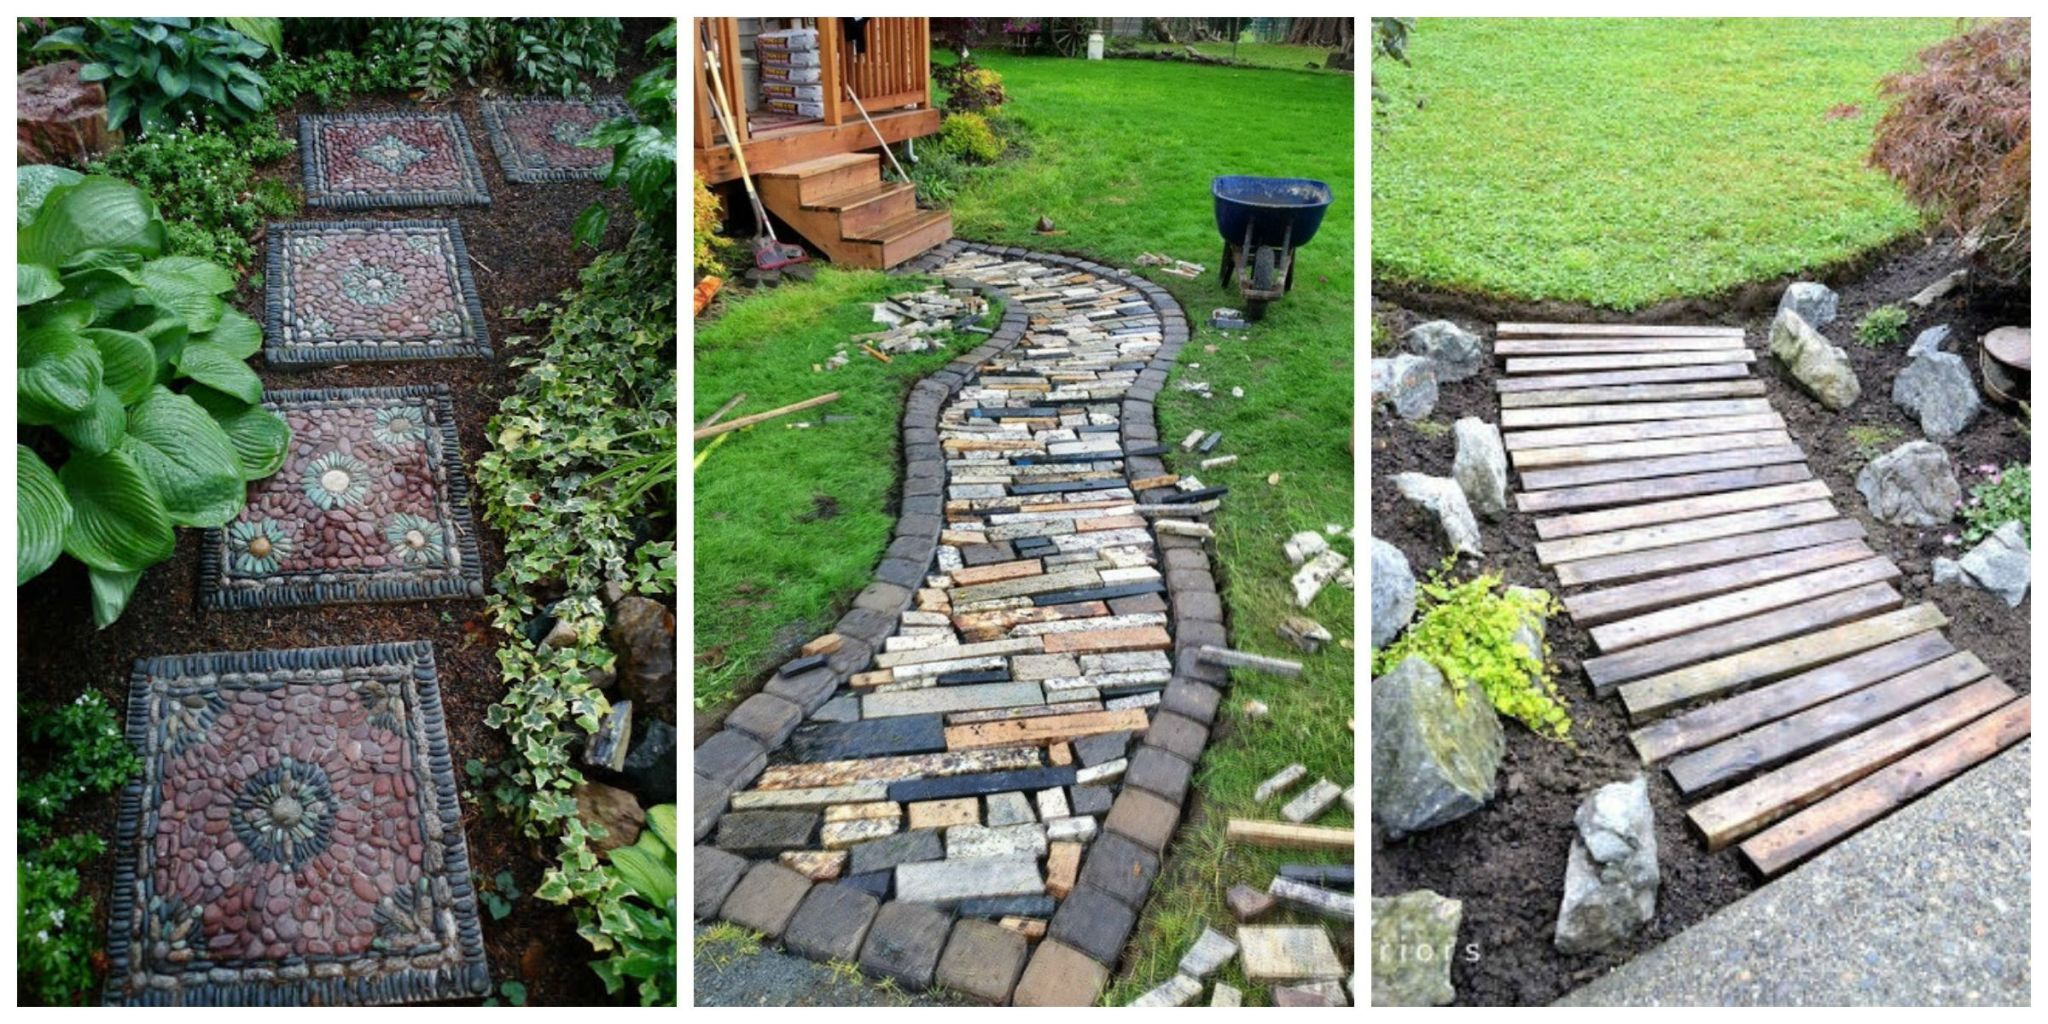 When It Comes To Backyard Pathways, The Options Are Seemingly Endless:  There Are The Standard Brick And Flagstone Pathways, Not To Mention  Reclaimed Wood ...